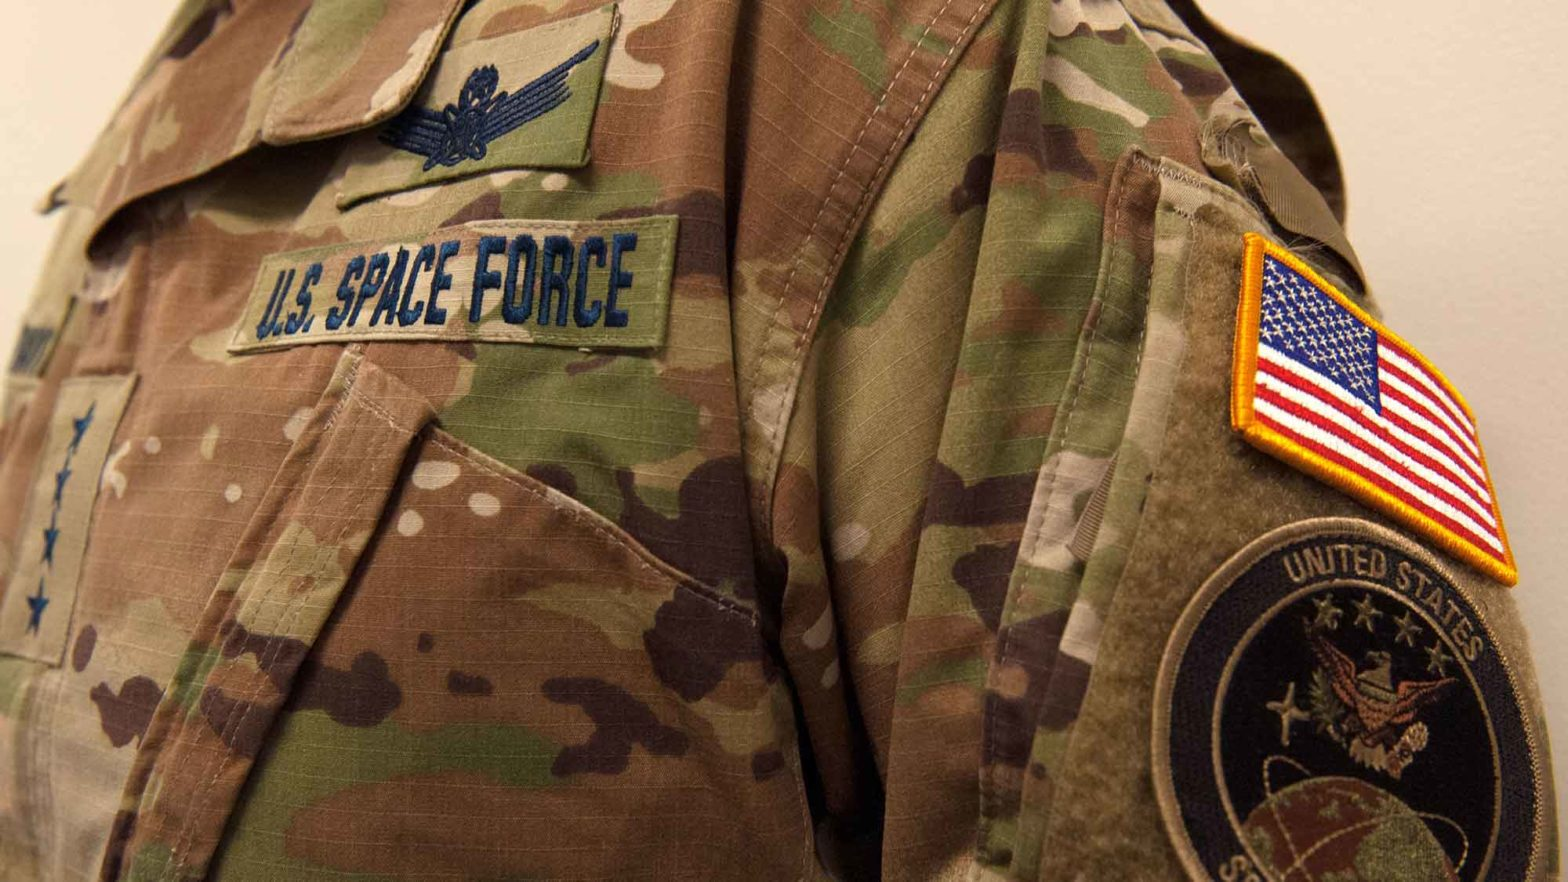 U.S. Space Force Uniform Unveiled